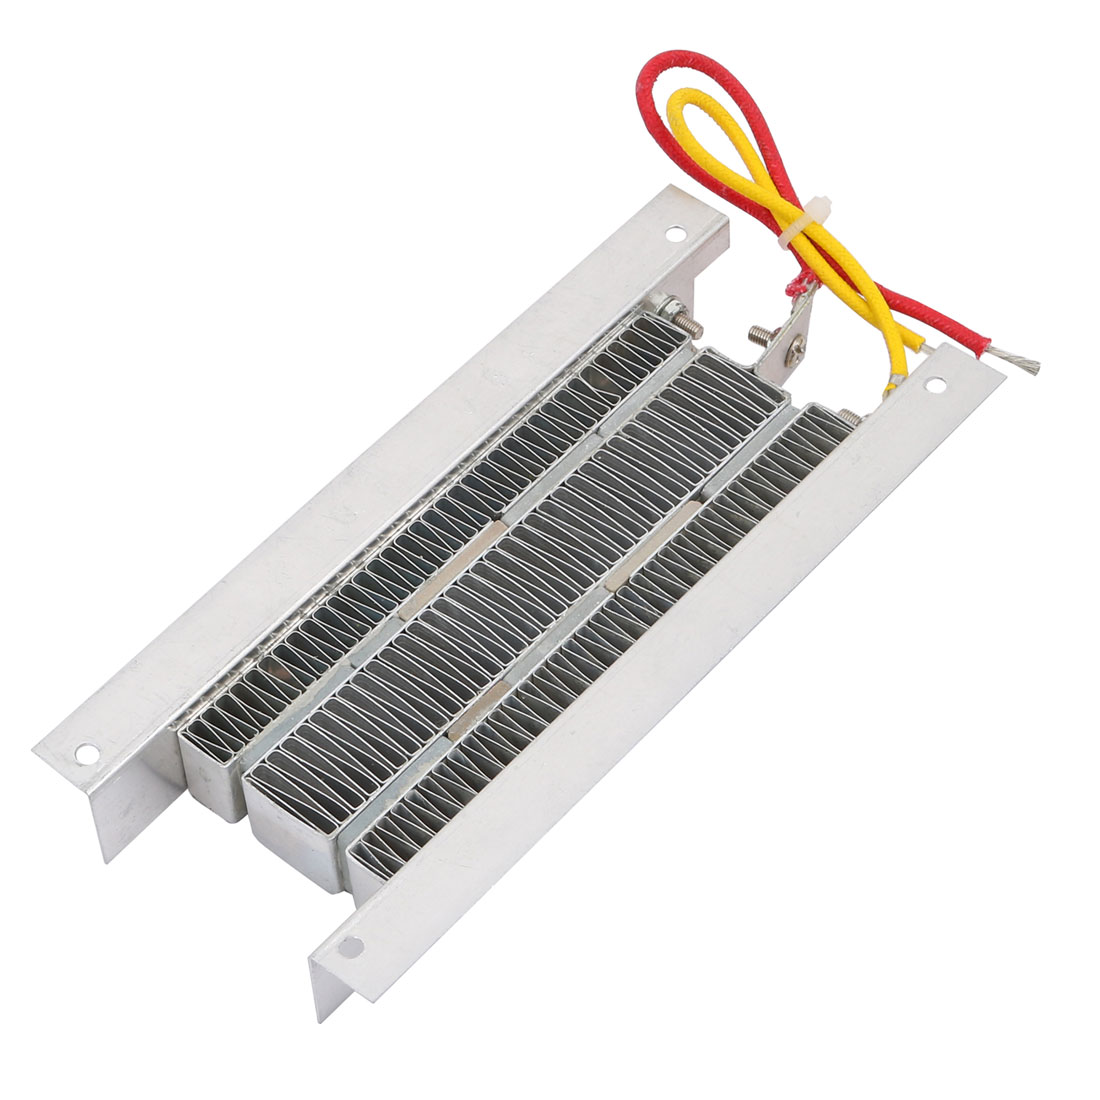 48V 800W Electric Ceramic Thermostatic PTC Heating Element Heater